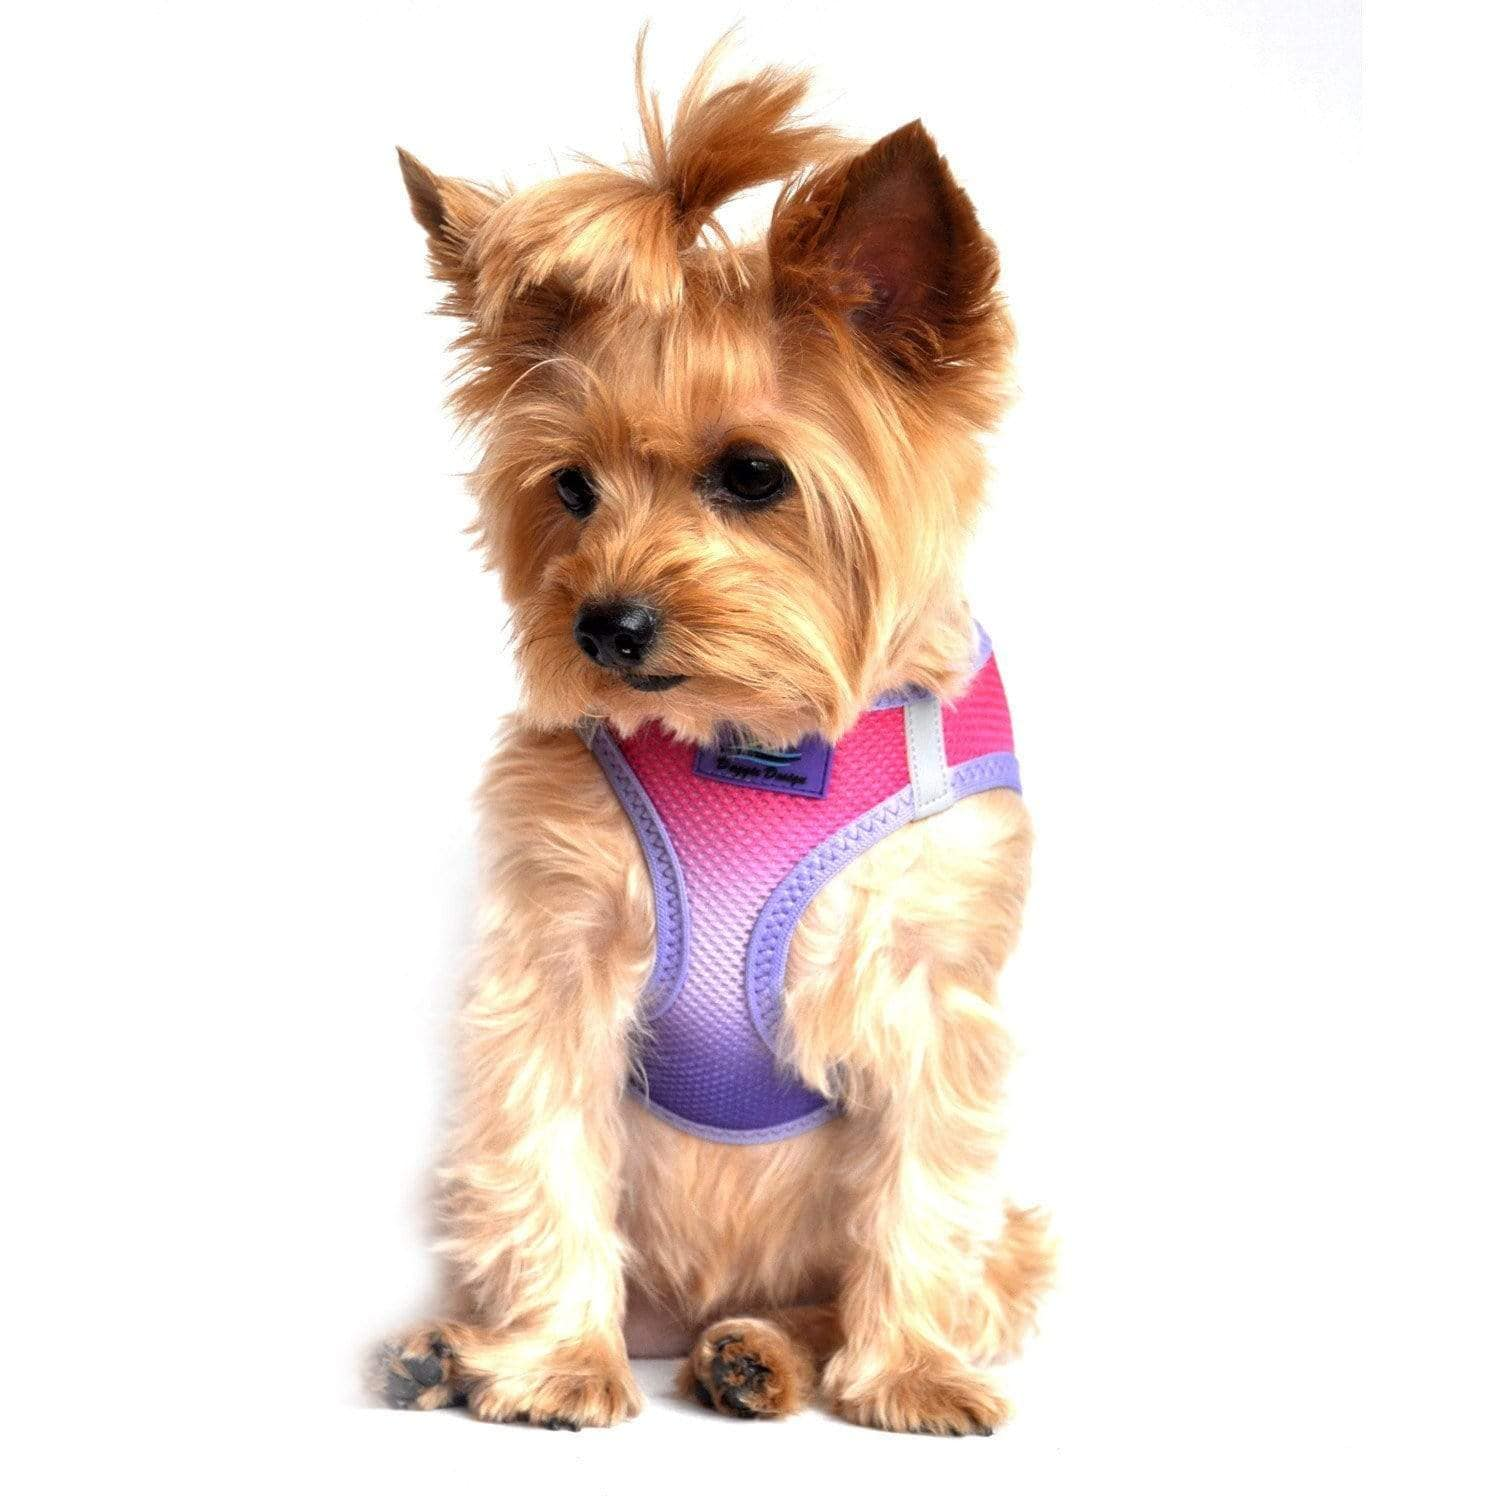 Step-in dog harness - Raspberry Sundae